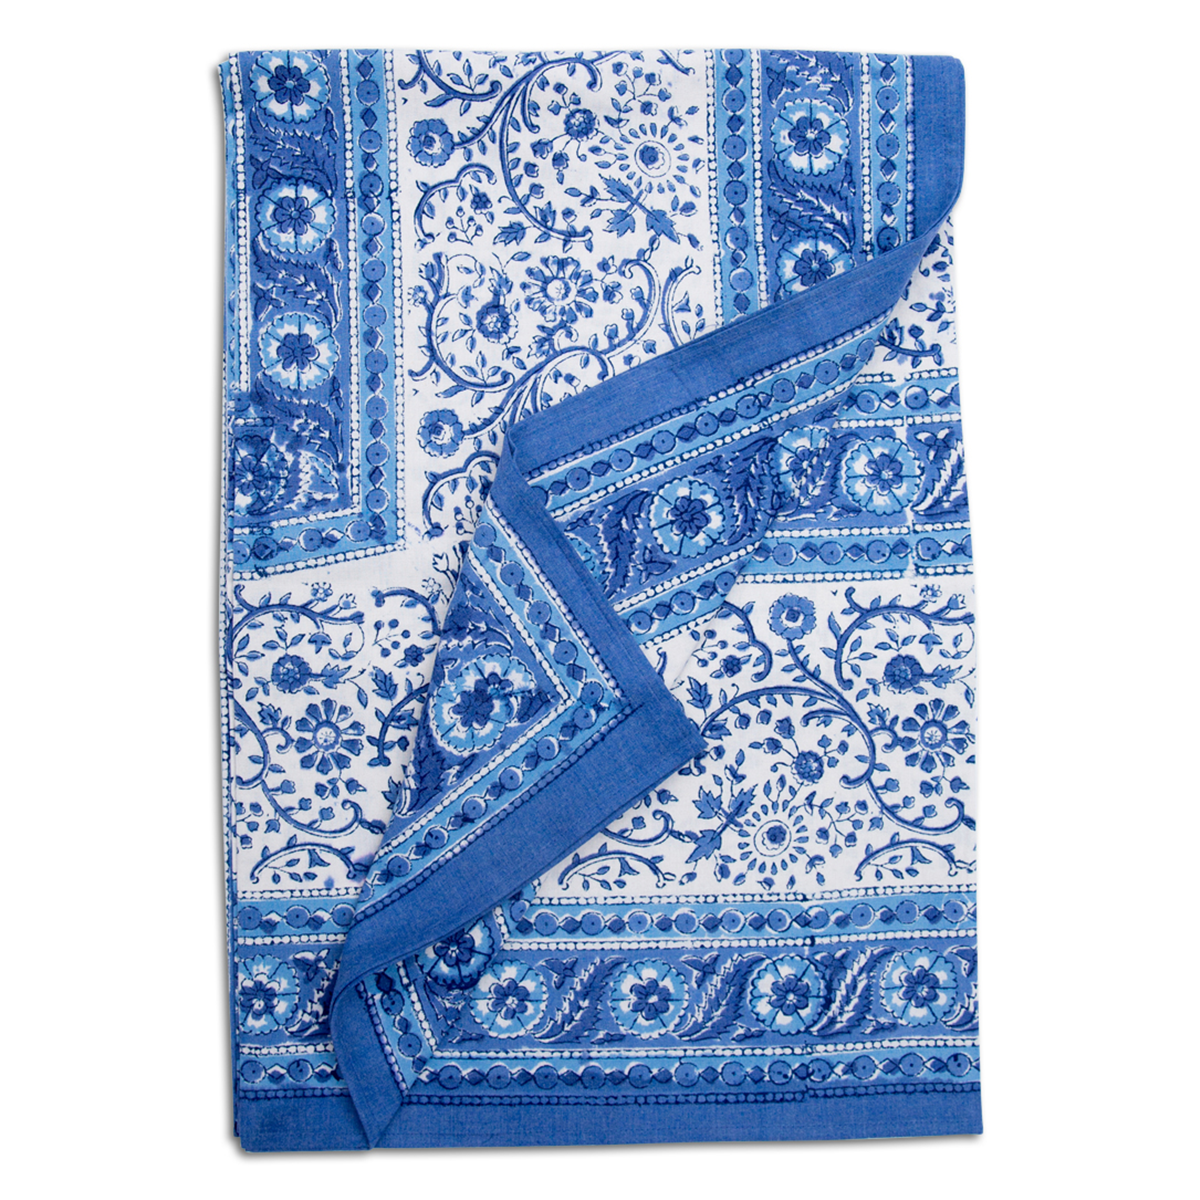 Raja Tablecloth - Blue